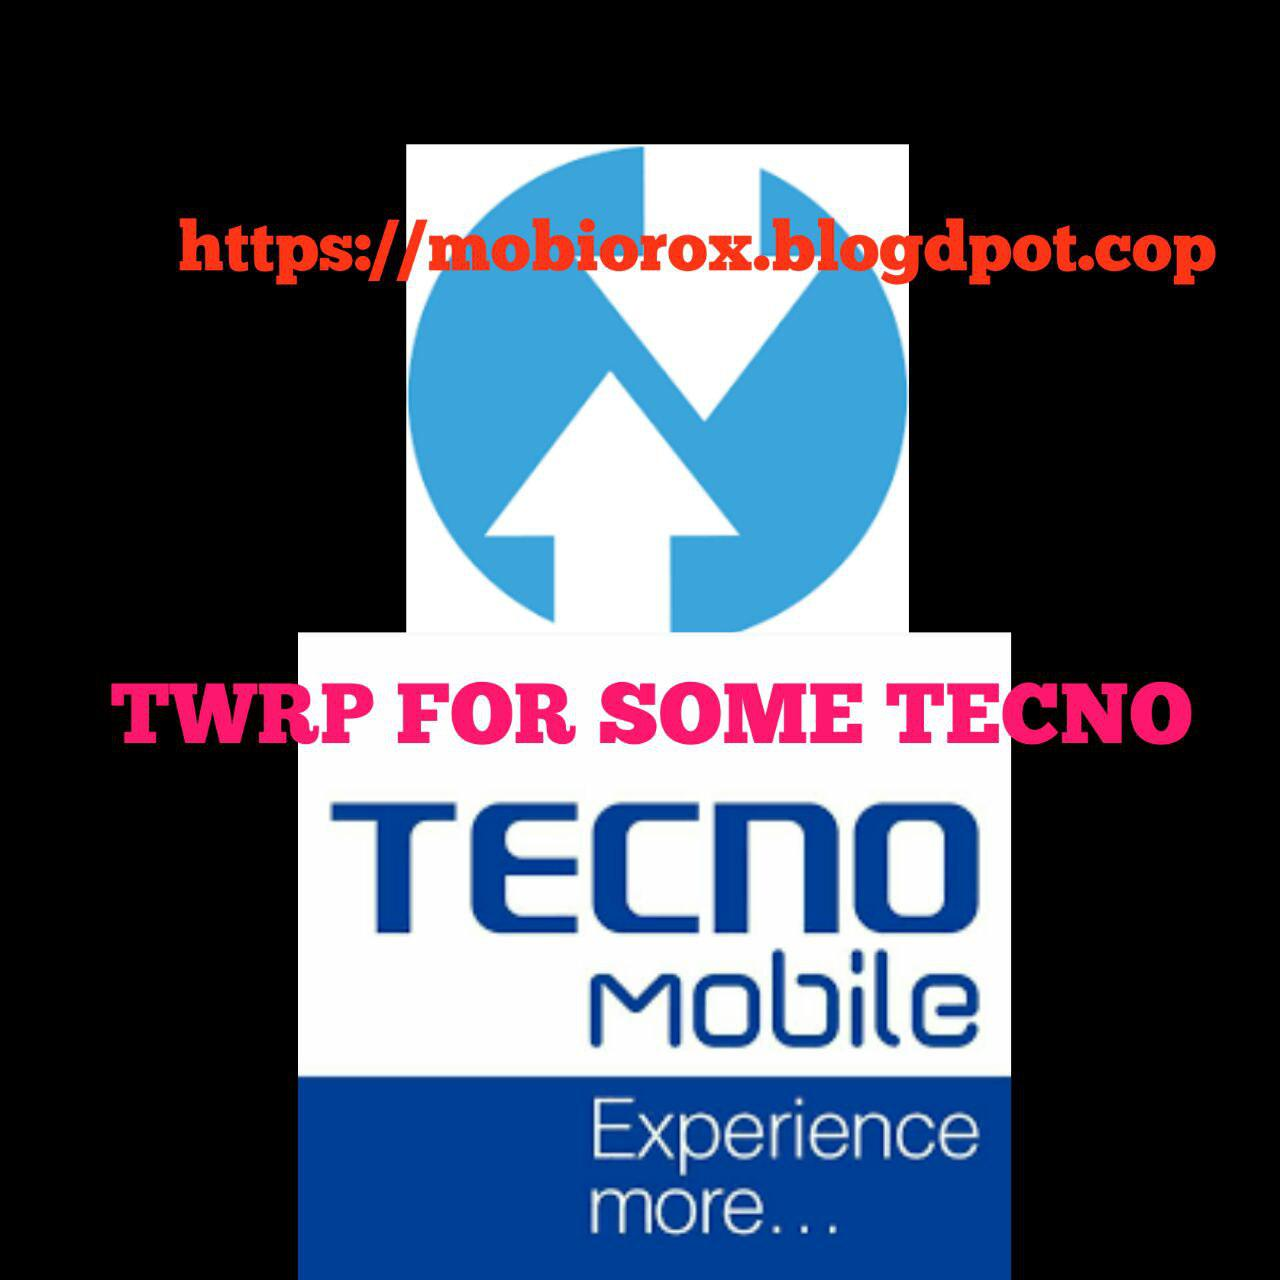 DOWNLOAD TWRP FOR SOME TECNO ANDROIDS | MOBIPROX BLOGSPOT